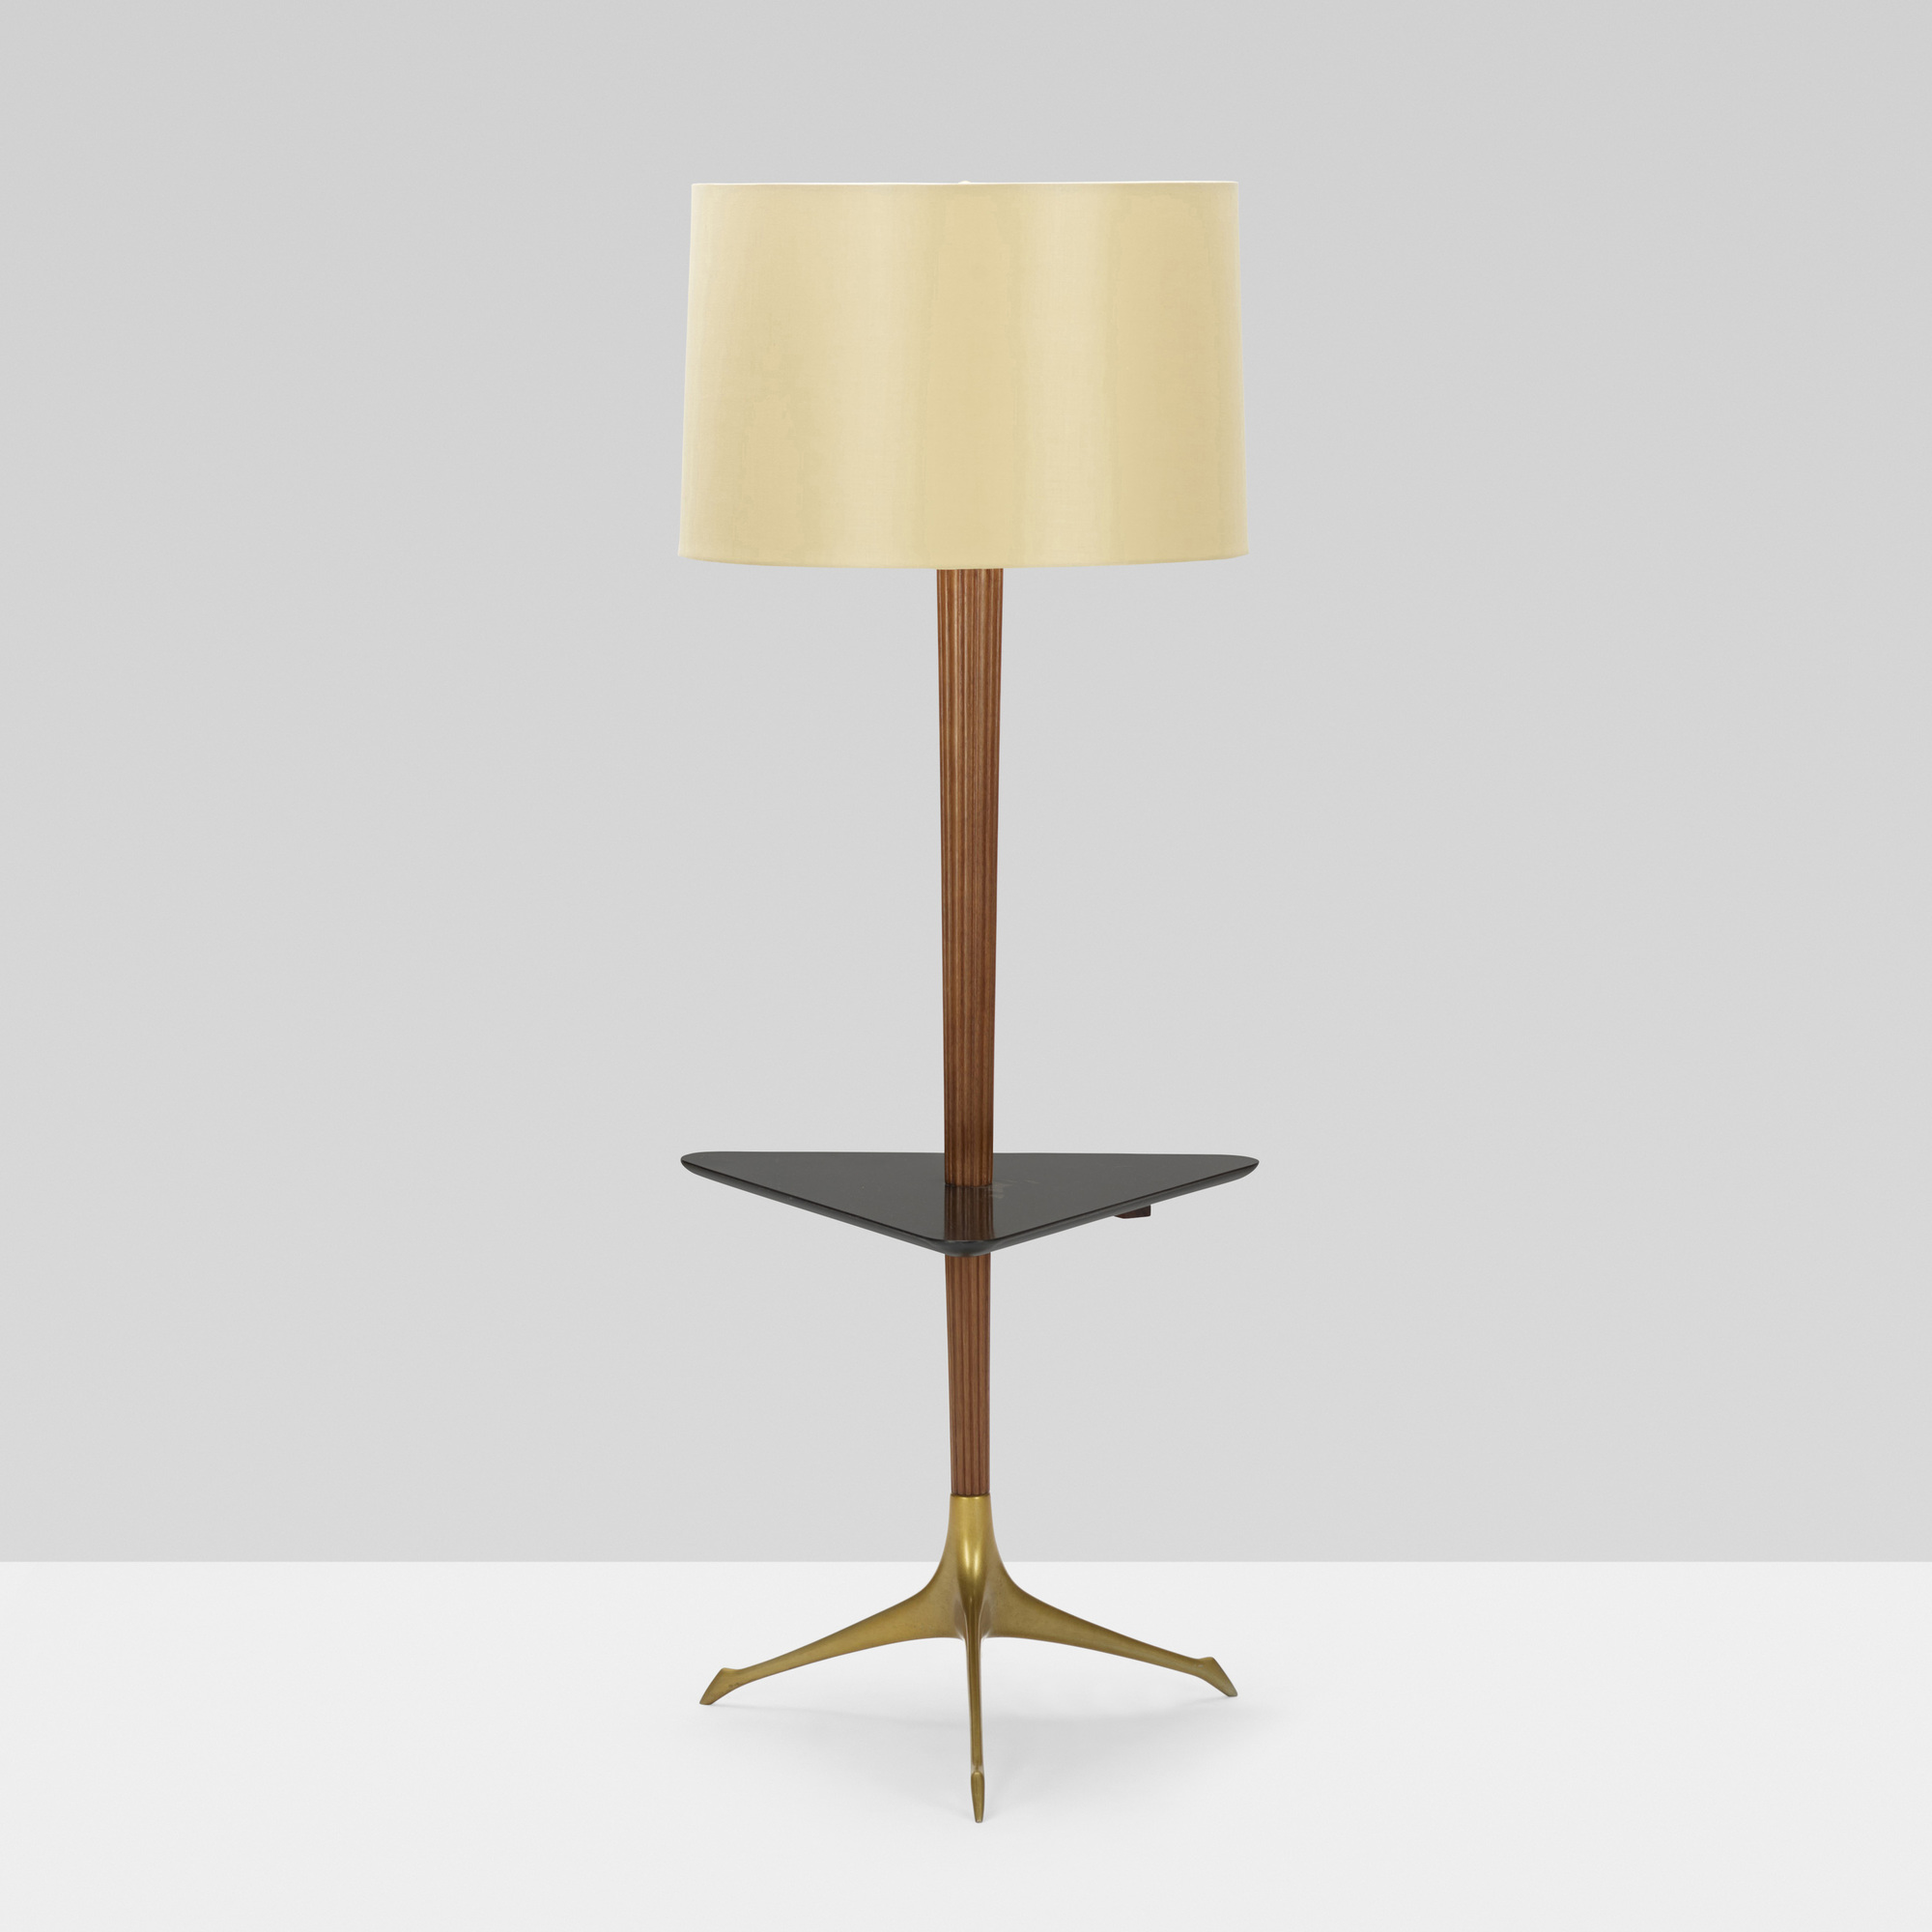 411: Vladimir Kagan / Tri-symmetric lamp table (2 of 3)